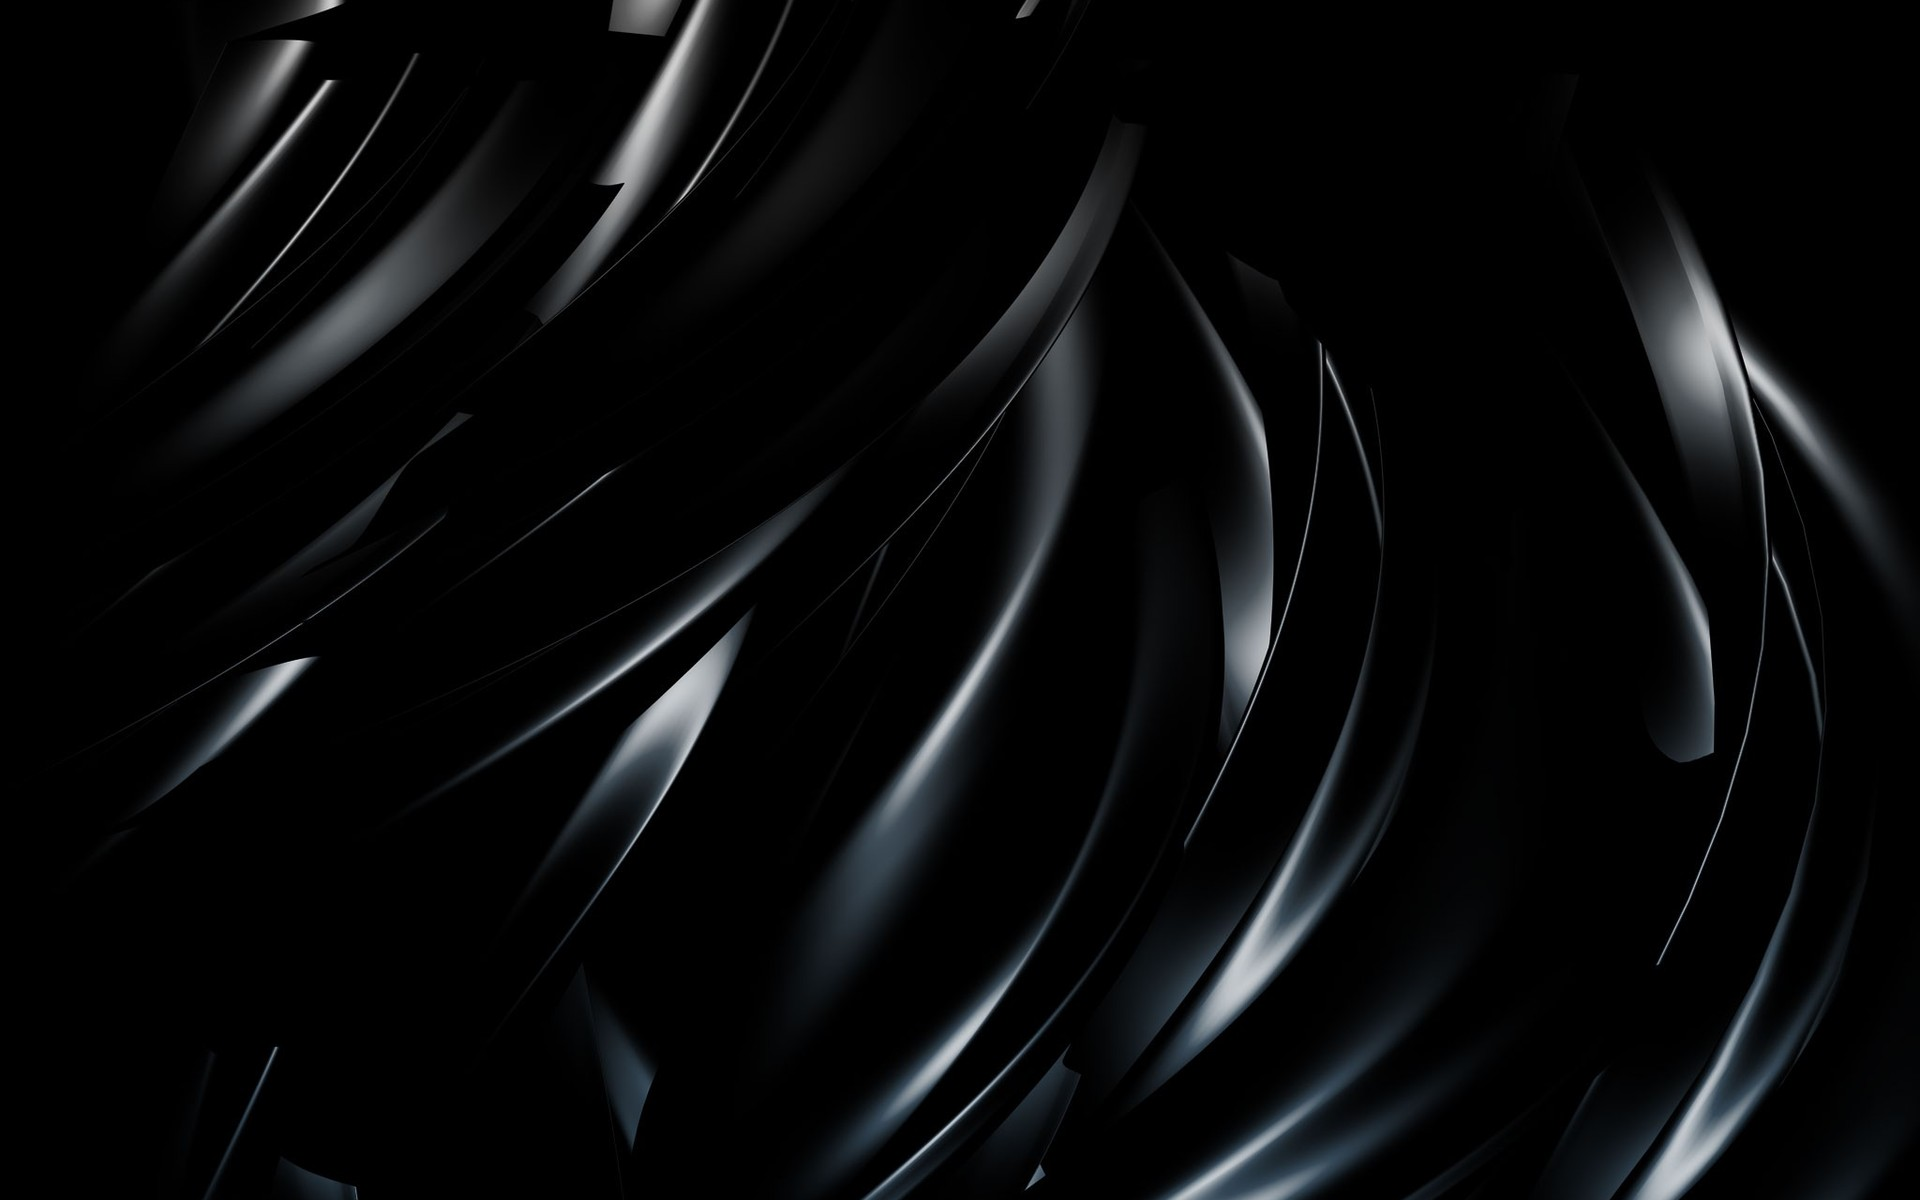 2 Black Grey Wallpapers | Black Grey Backgrounds